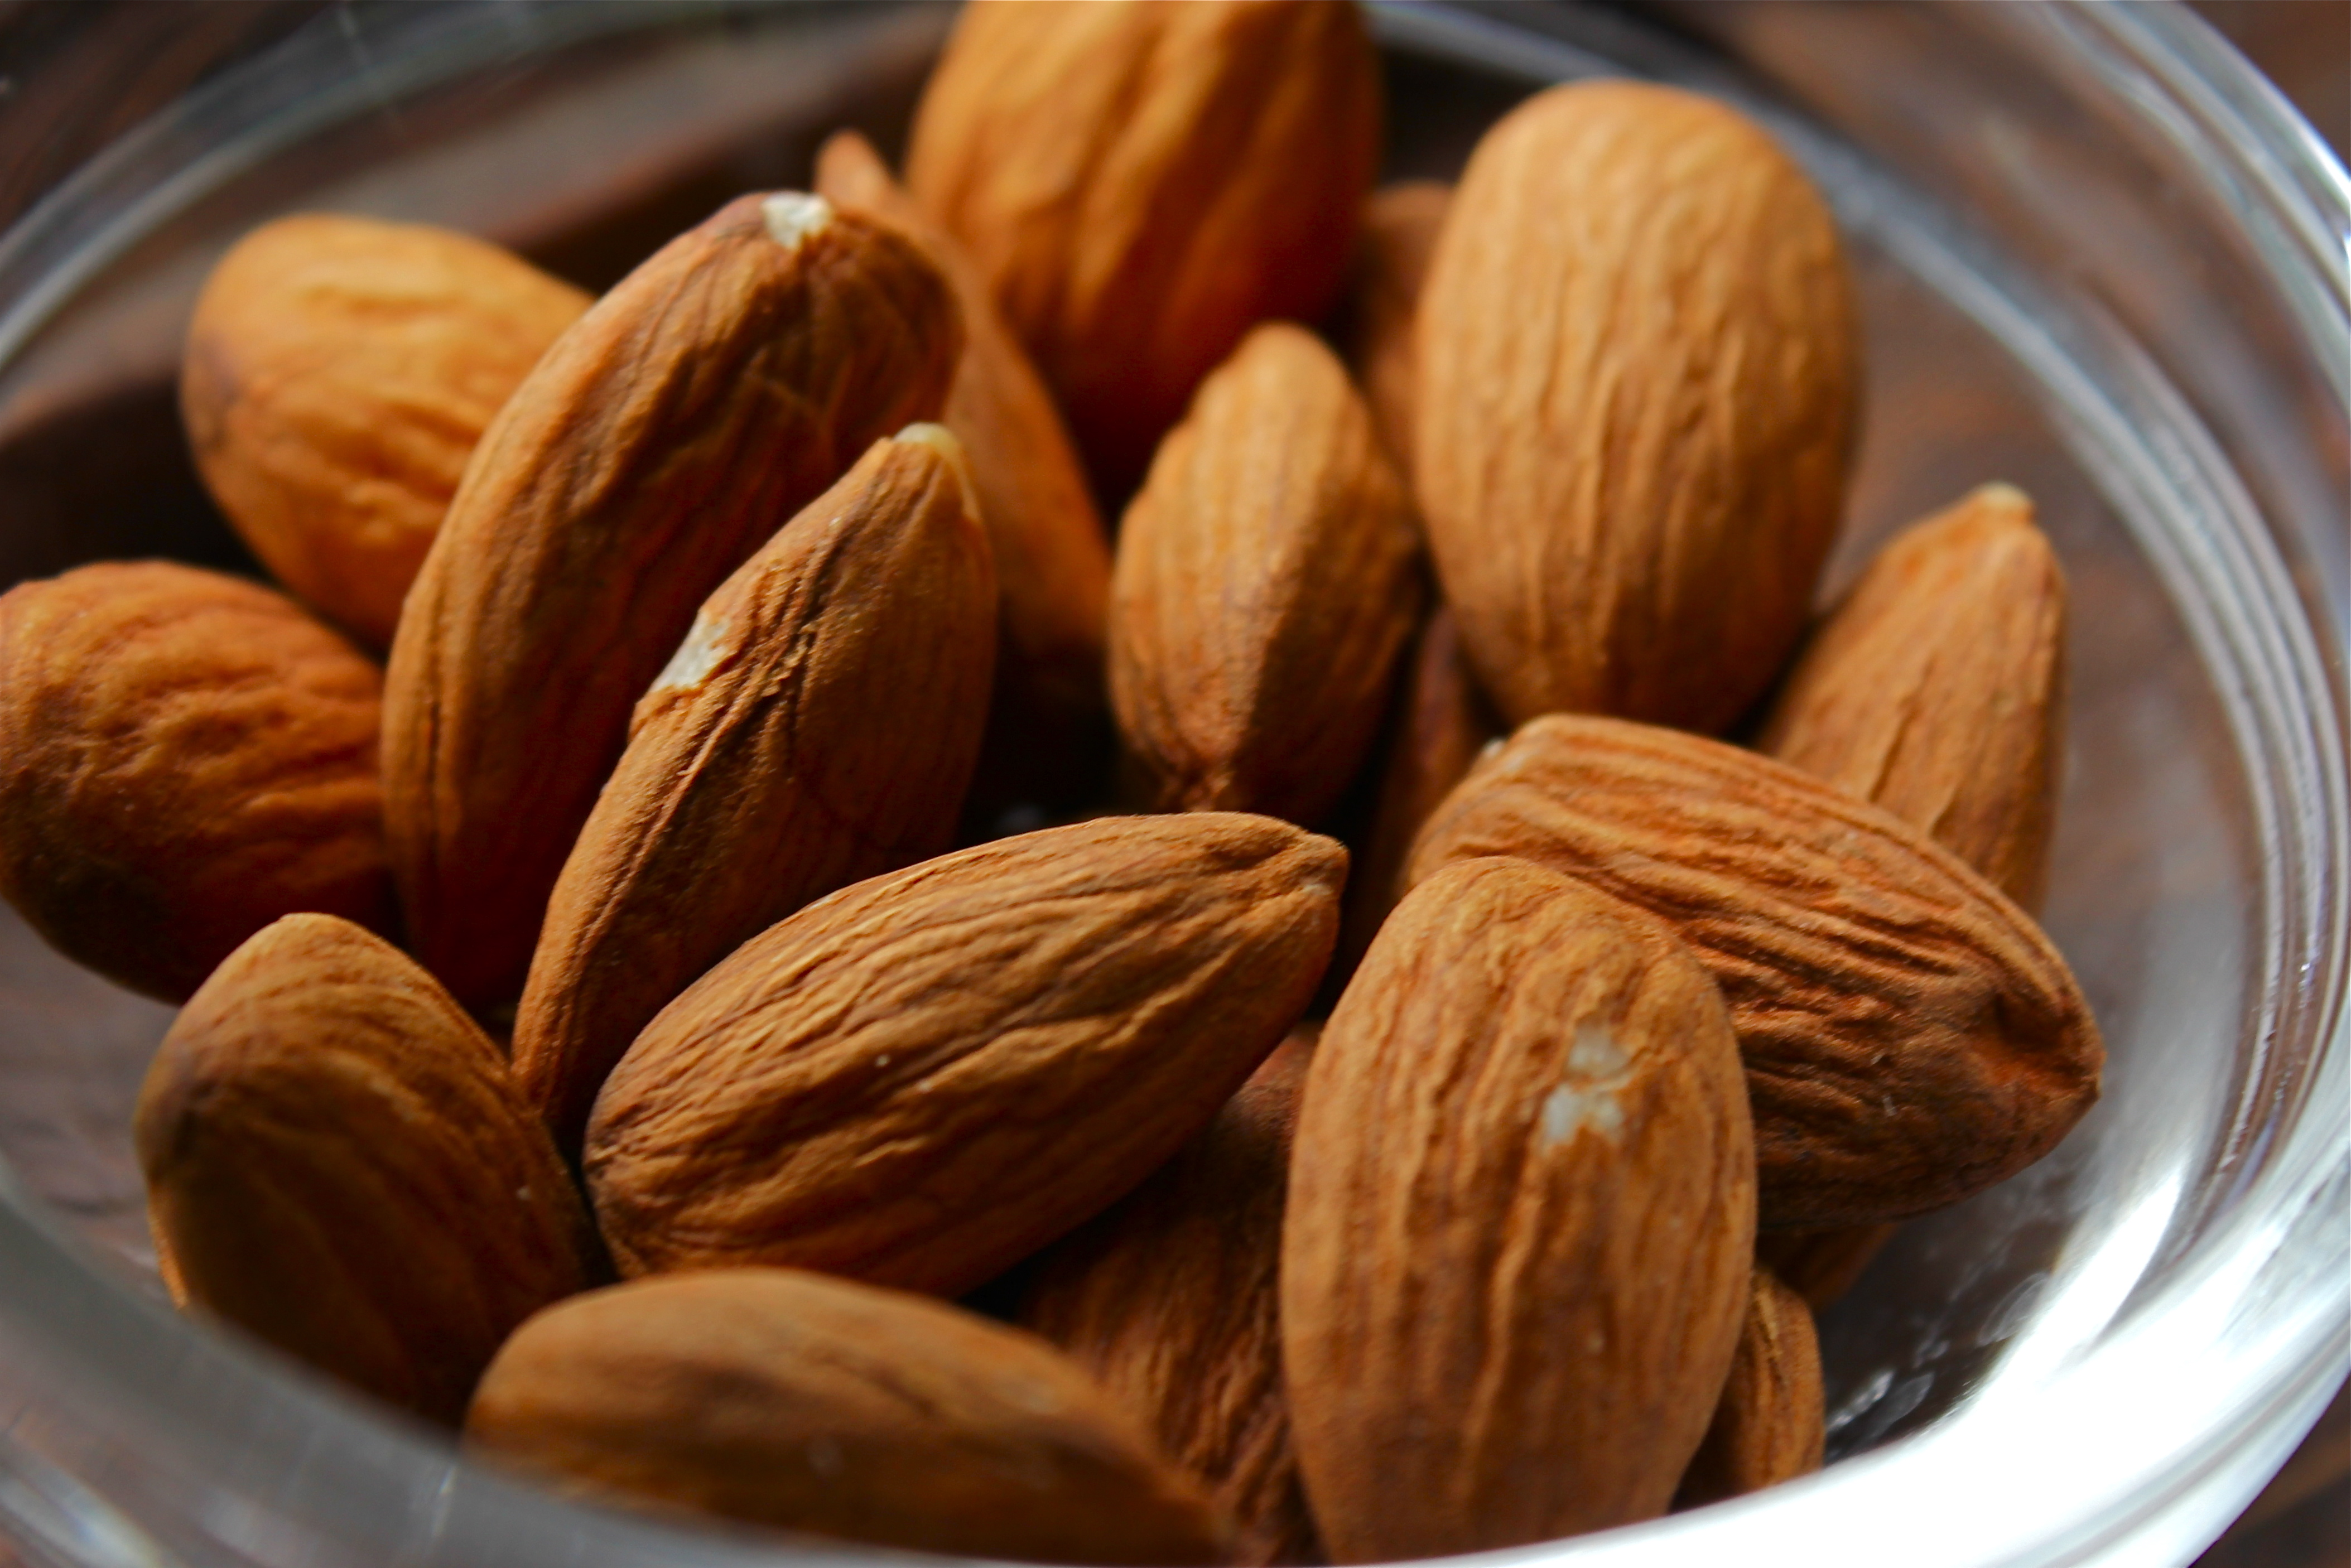 Live in the West? You might just have a magnesium ...